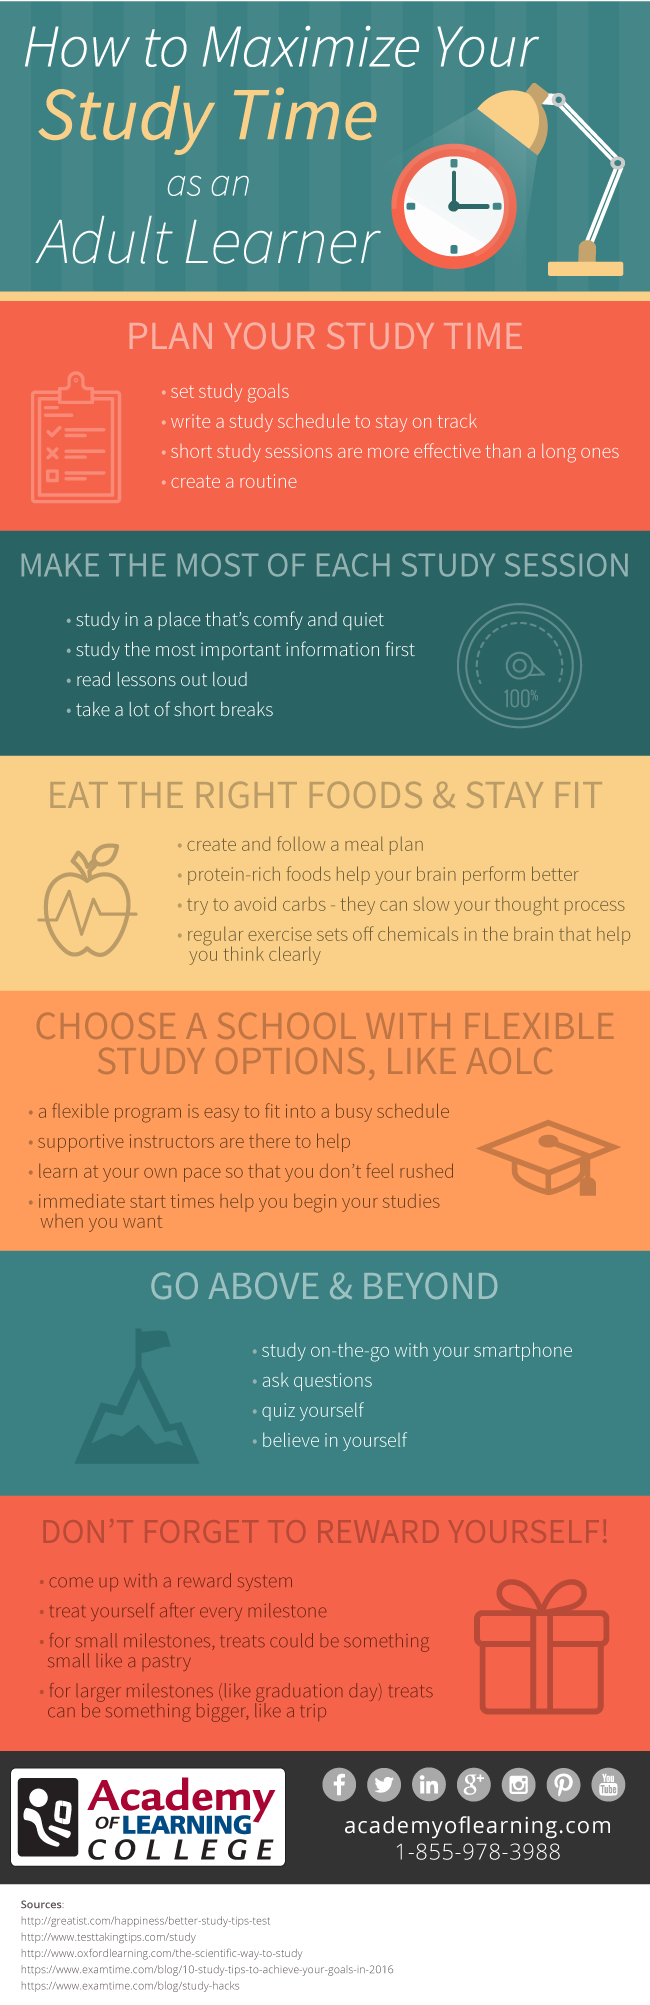 AOLC_max_study_time_adult_infographic